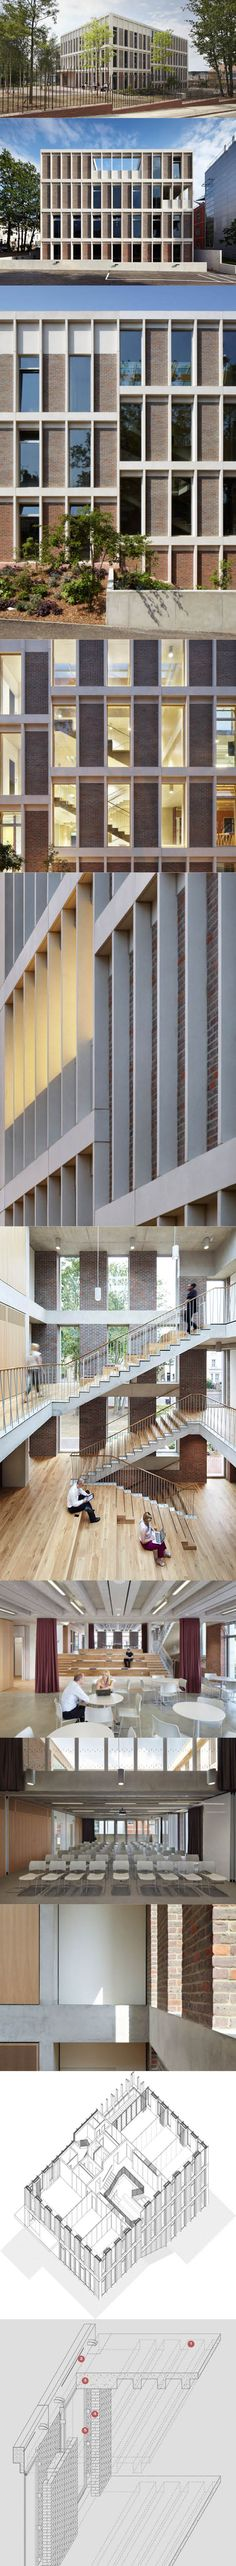 Duggan Morris Architects - ORTUS, home of Maudsley Learning / 2013 / brick…